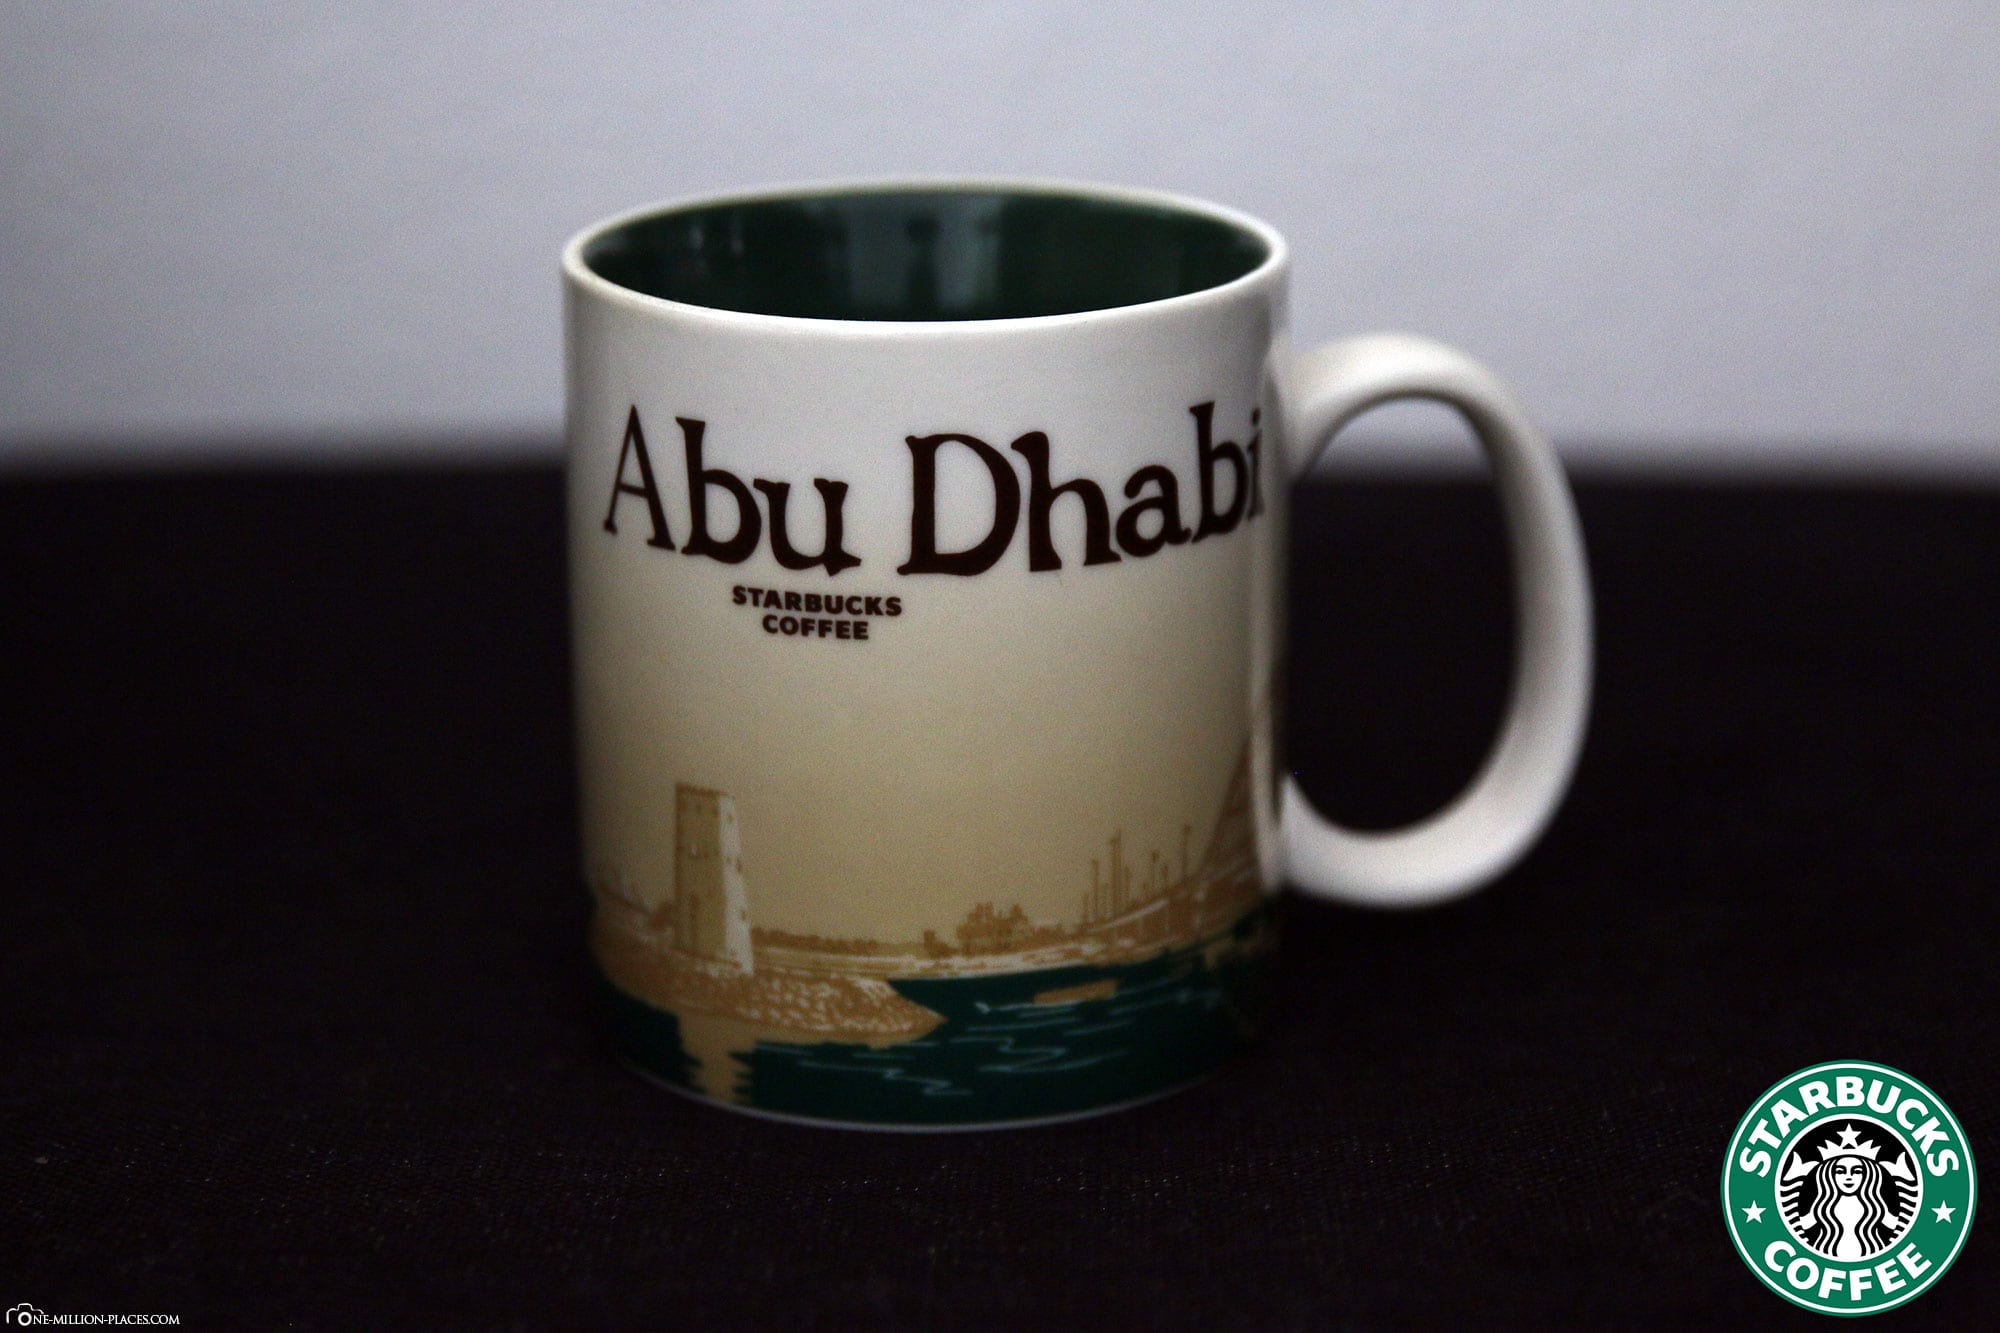 Abu Dhabi, Starbucks Cup, Global Icon Series, City Mugs, Collection, United Arab Emirates, TravelReport